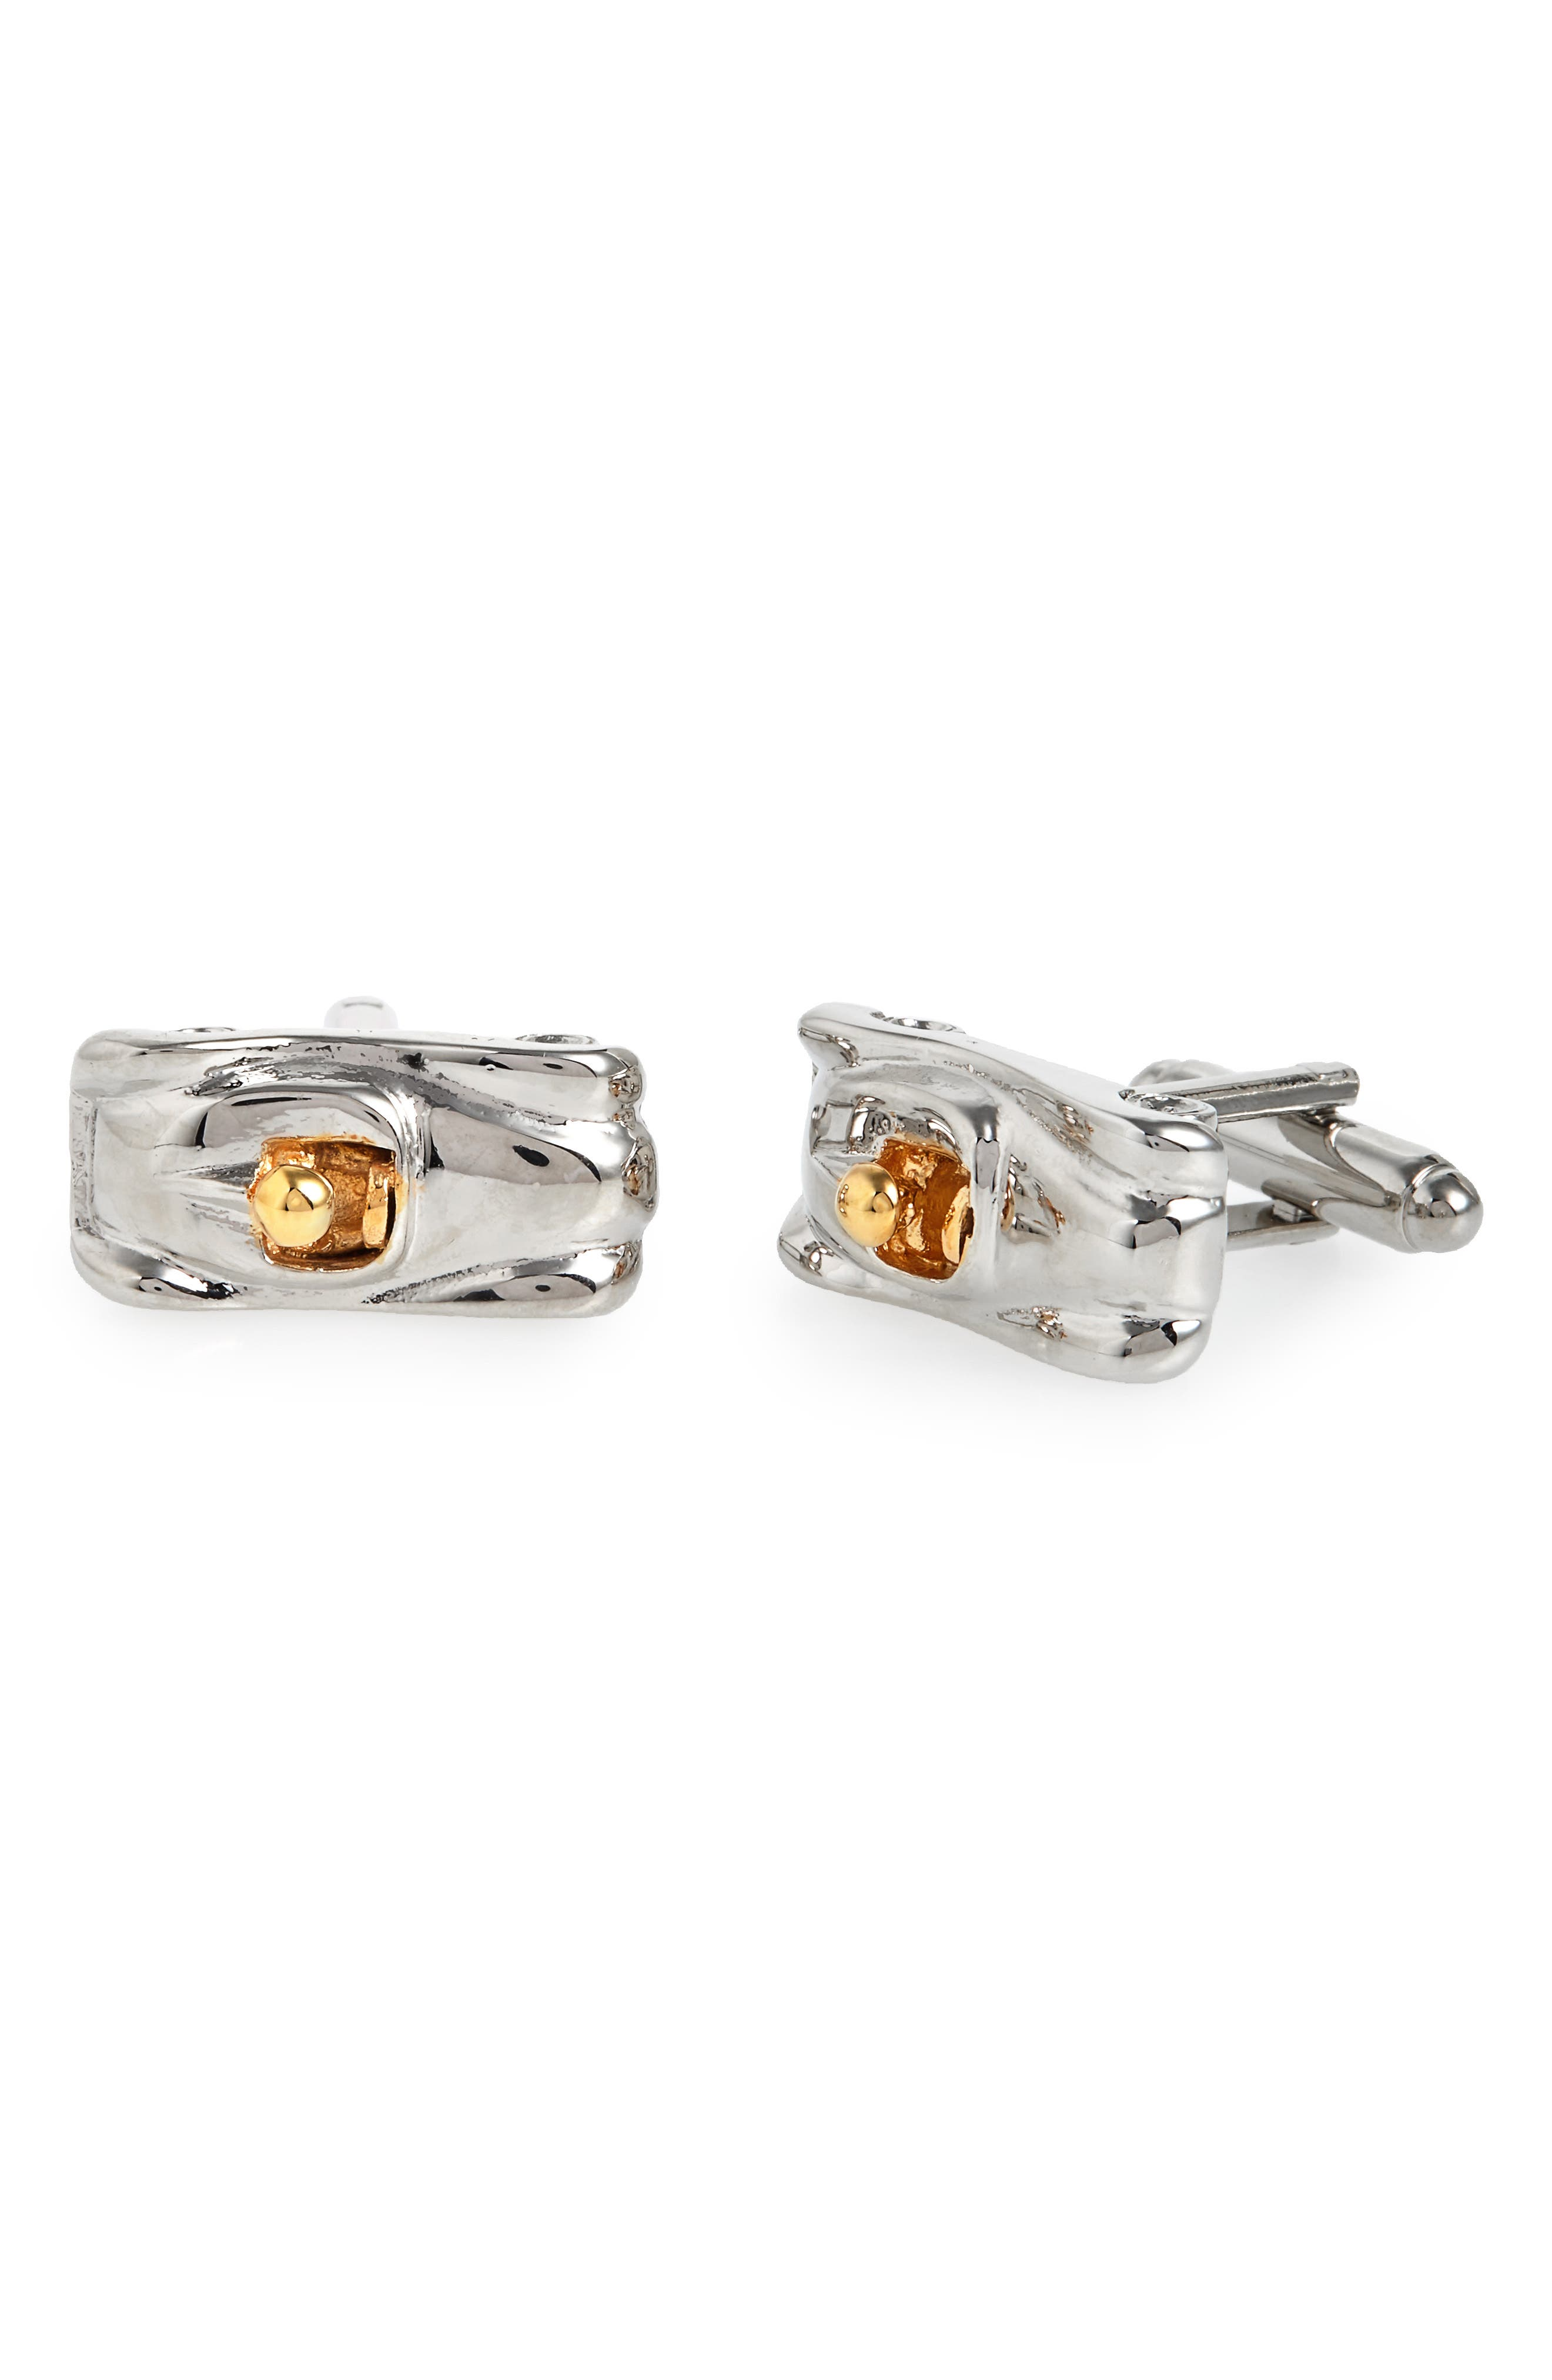 Speed Racer Cuff Links,                         Main,                         color, 041